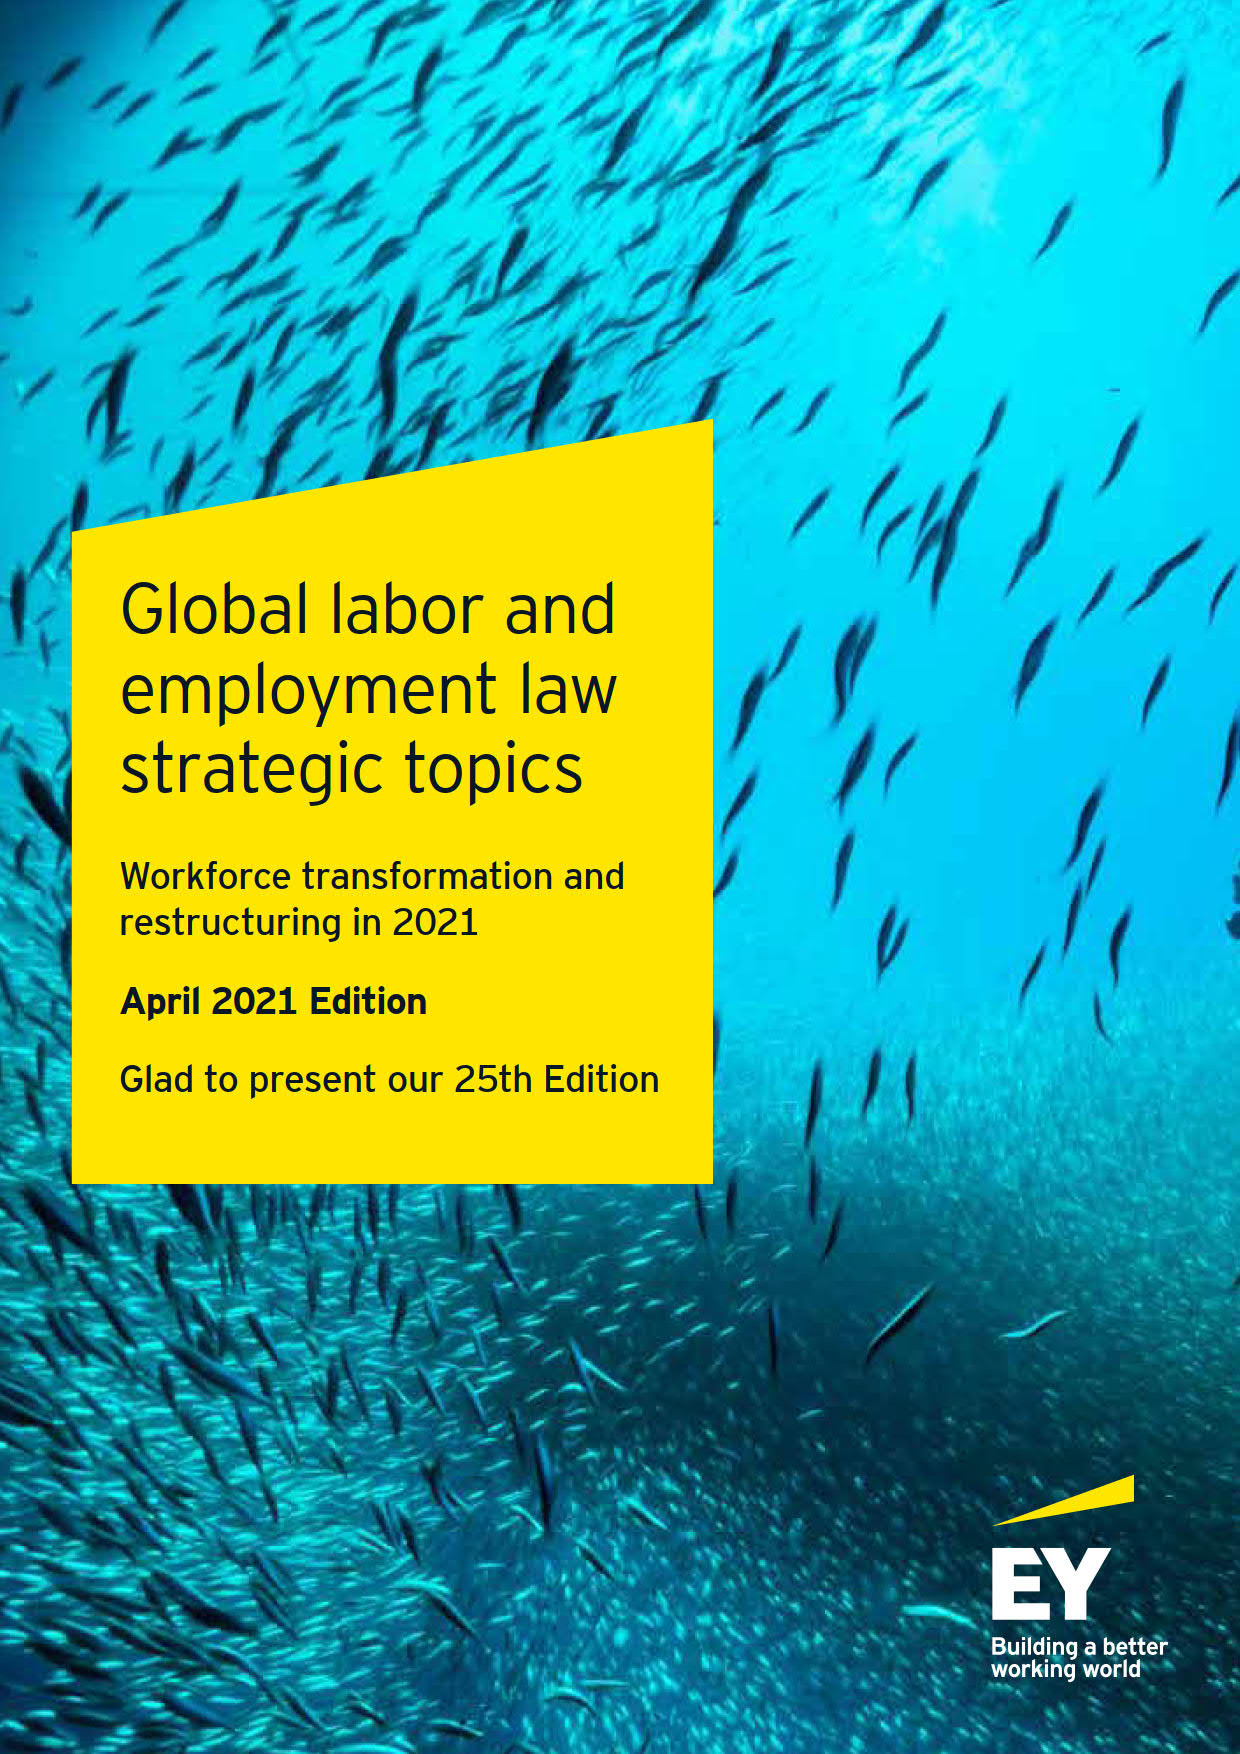 Global labor and employment law strategic topics - Workforce transformation and restructuring in 2021